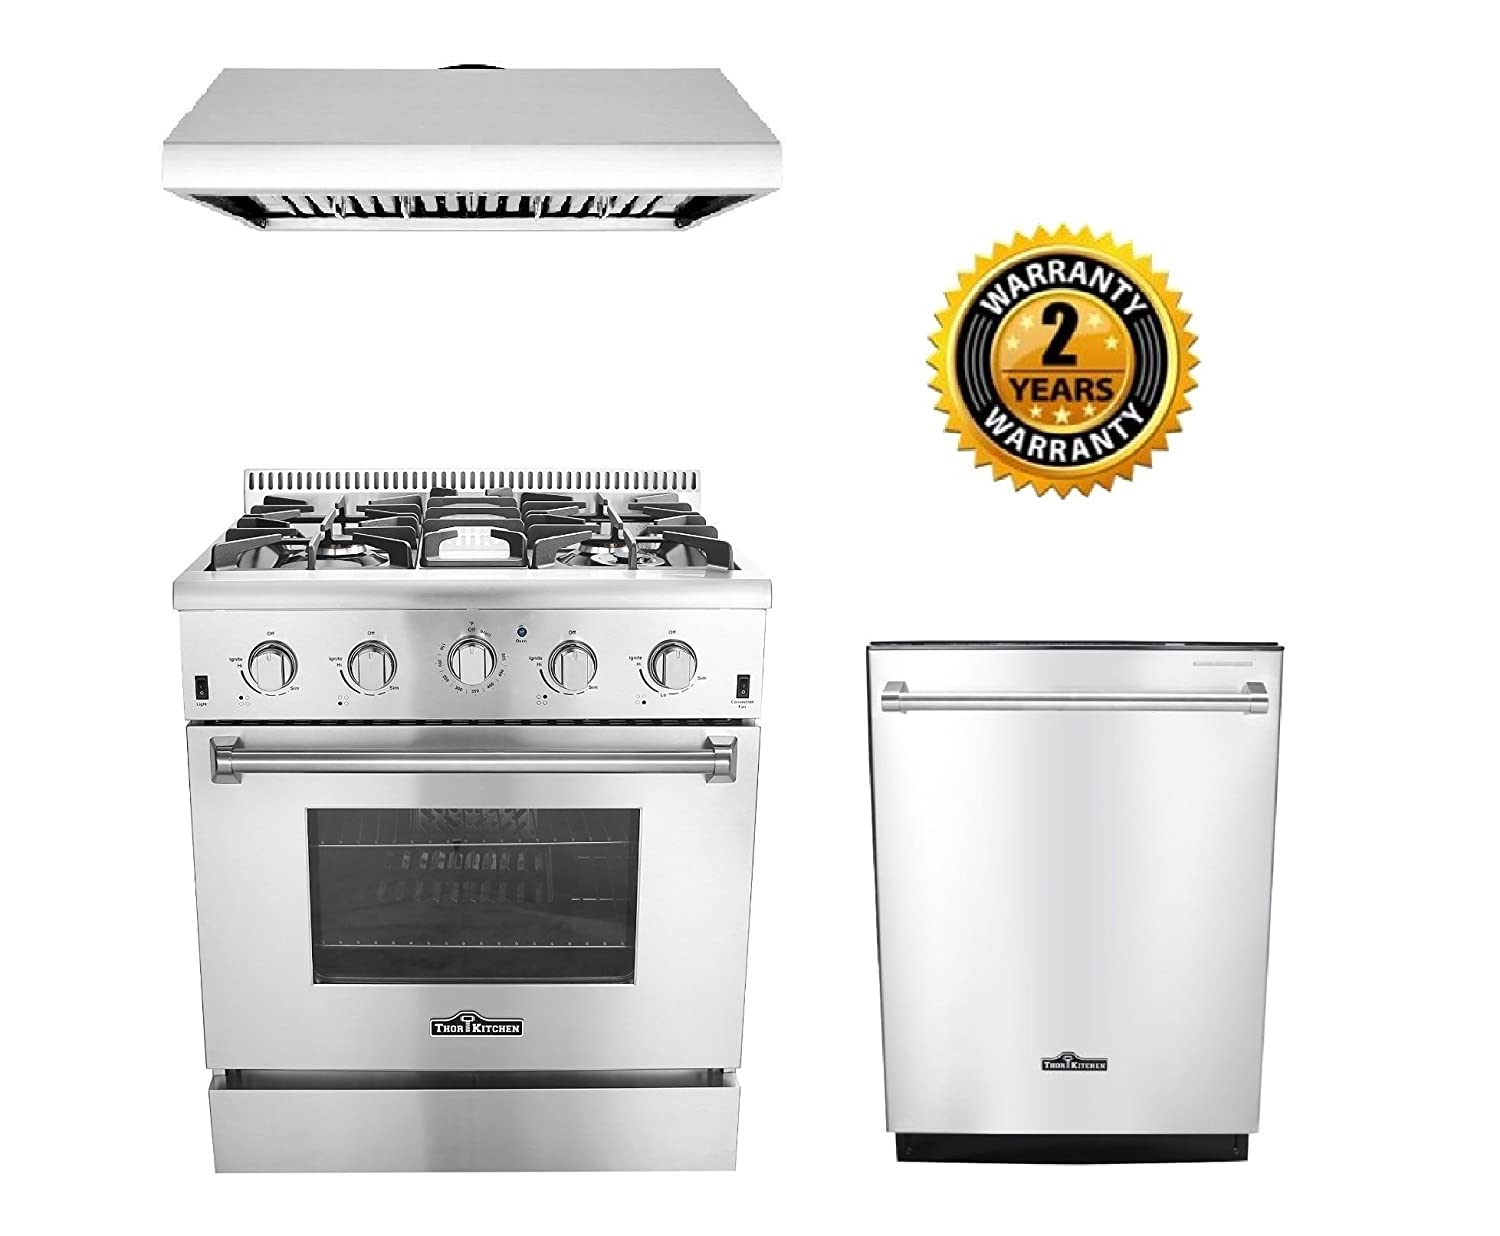 "Thor Kitchen 3-Piece Kitchen Package with HRG3080U 30"" Pro Style 4 Burner Stainless Steel Gas Range, HRH3006U 30"" Under Cabinet Range Hood Stainless Steel and HDW2401SS 24"" Dishwasher Stainless Steel"